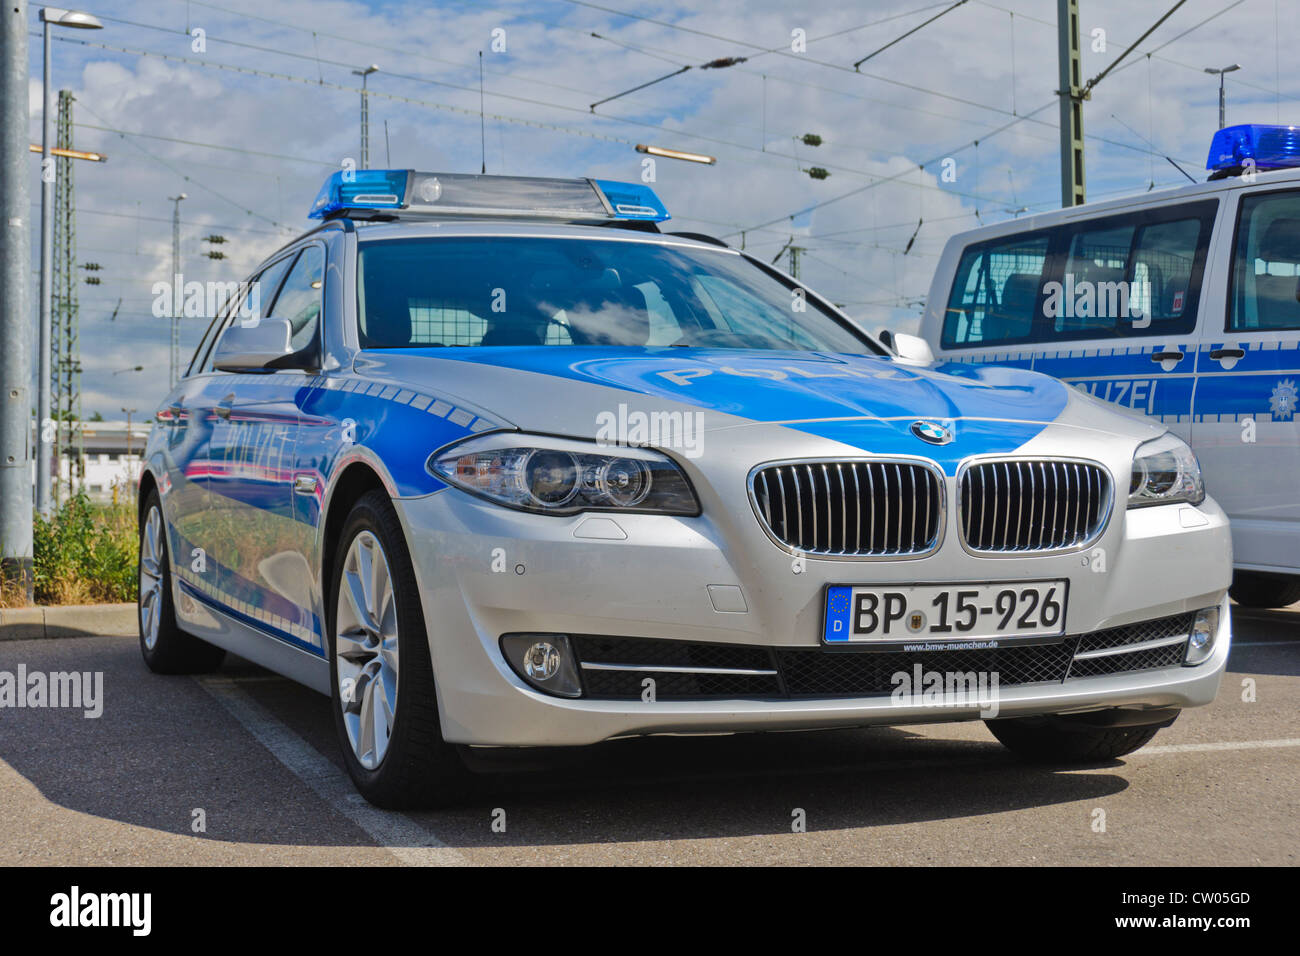 Bon BMW And VW Volkswagen Police Patrol Cars Of The German Federal Police  (Bundespolizei)   Heilbronn Germany